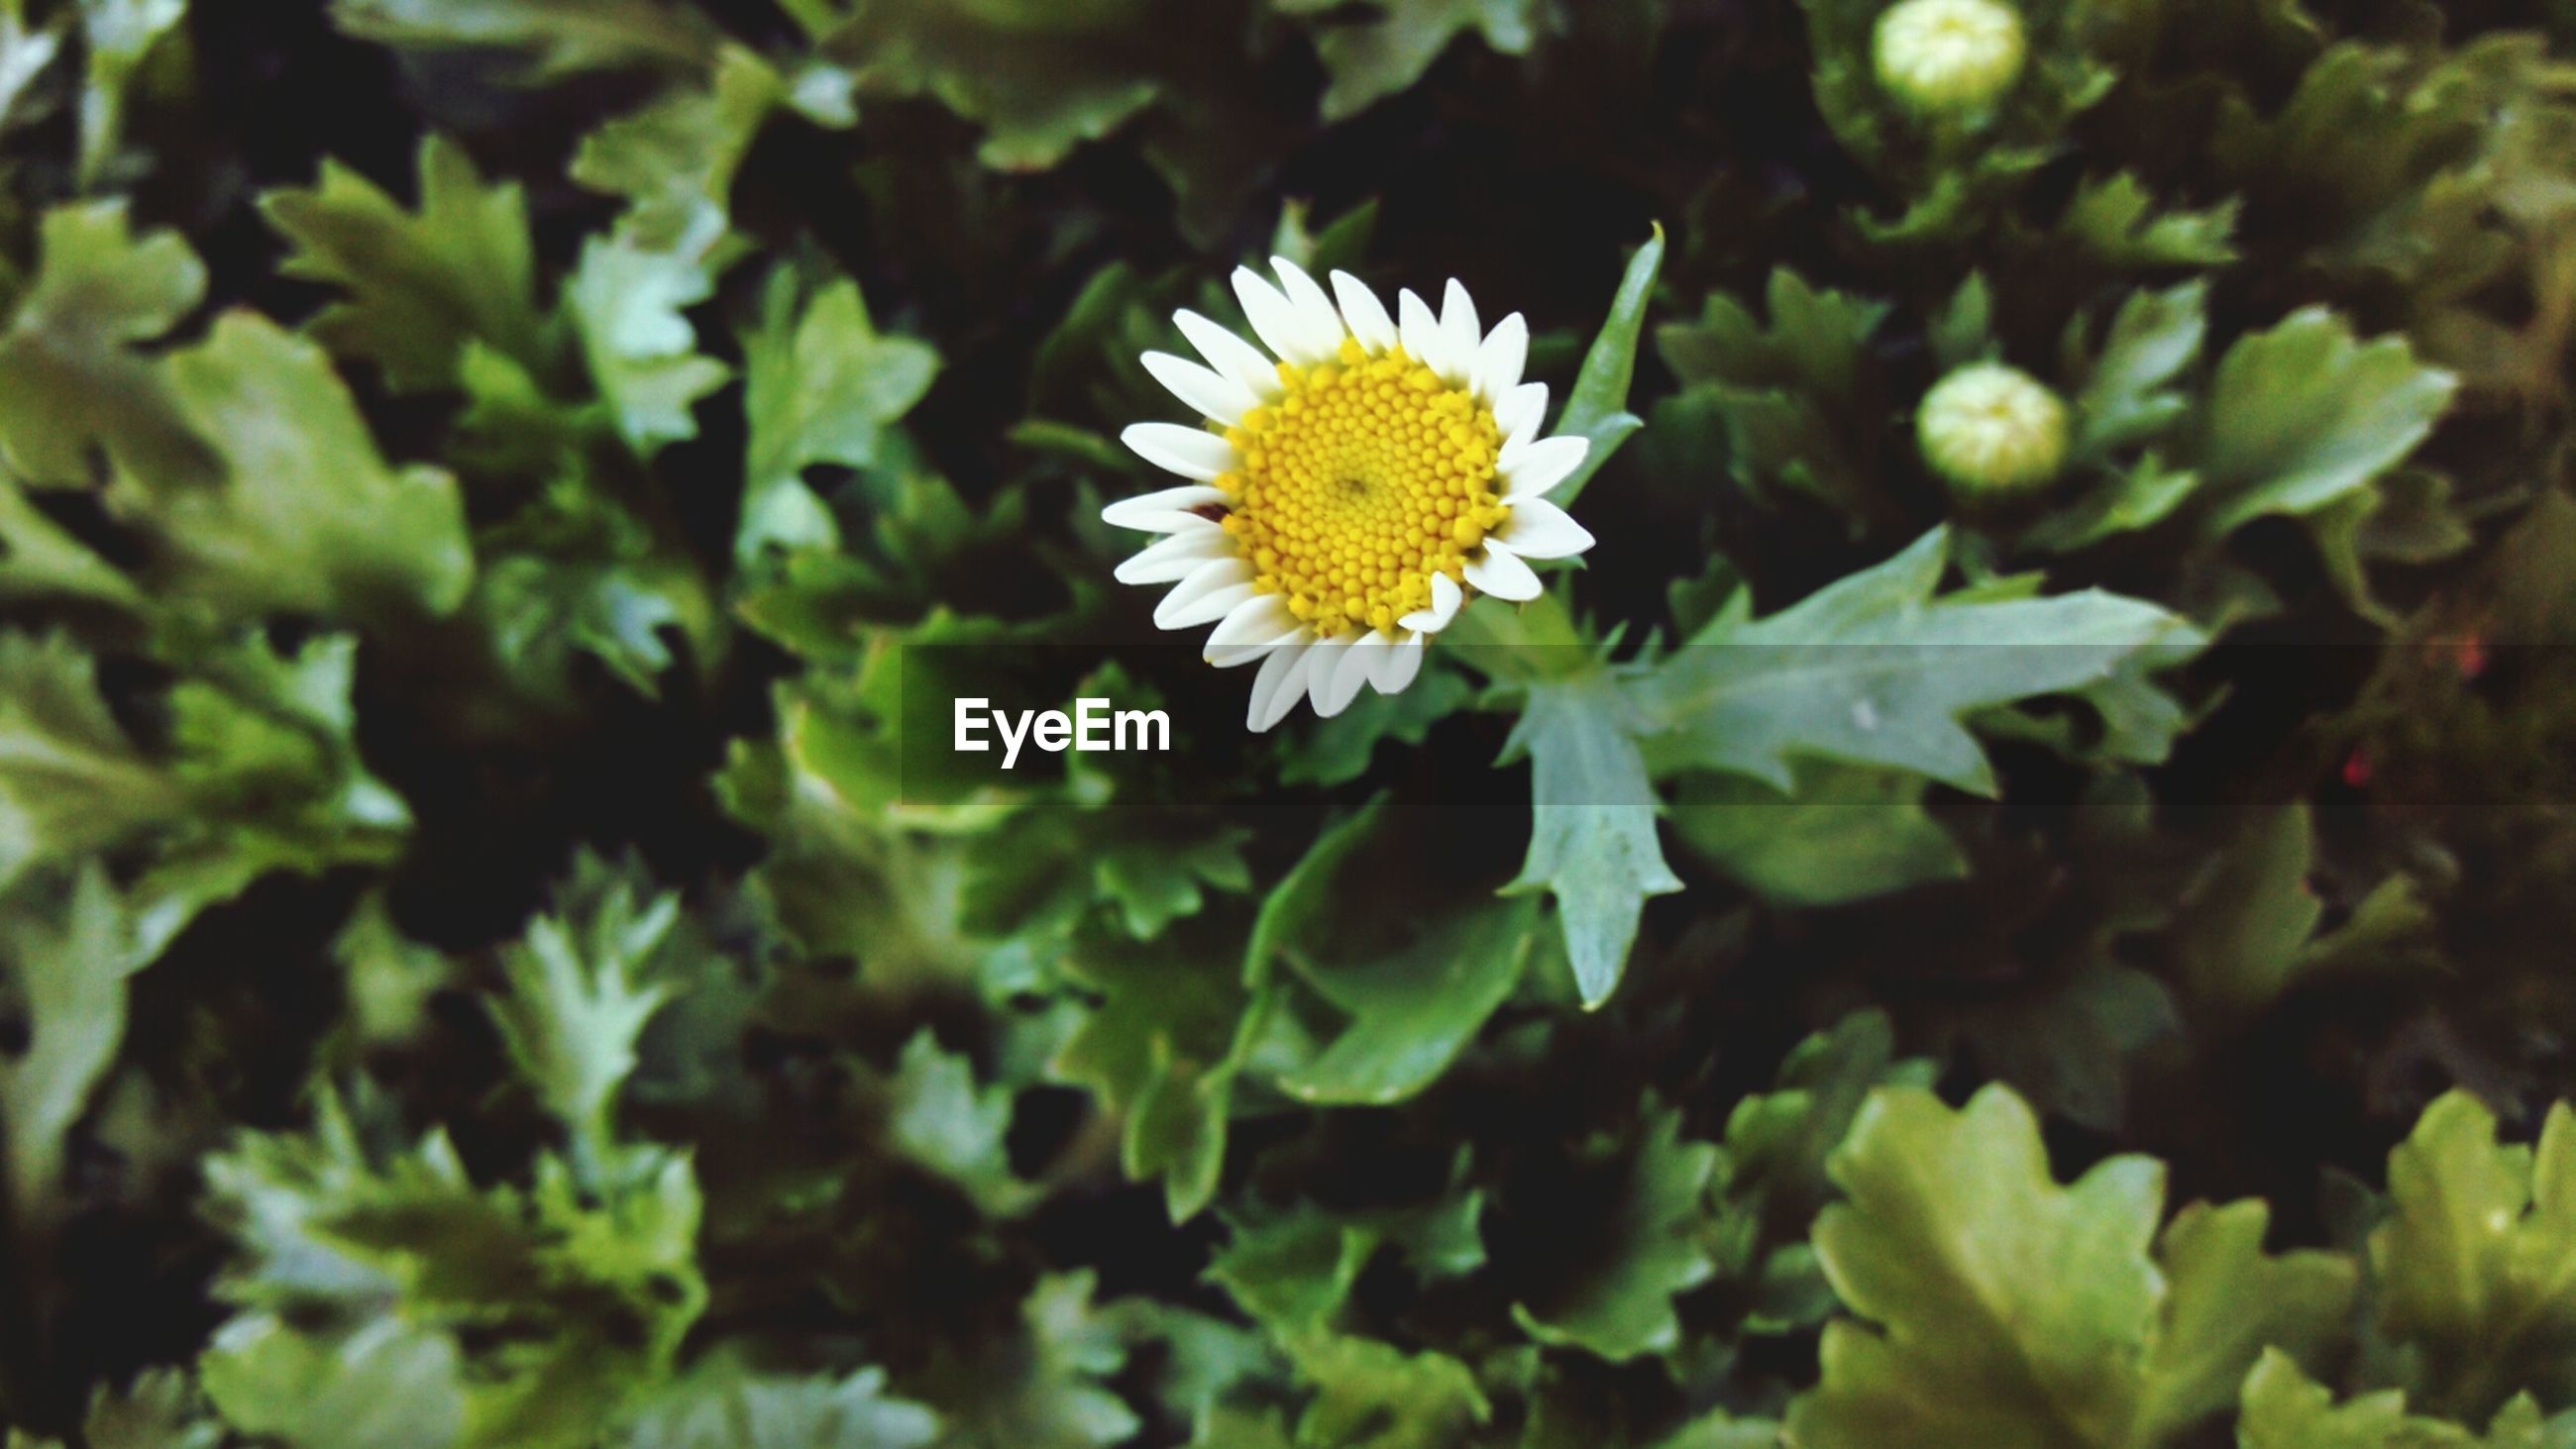 High angle view of daisy growing in park